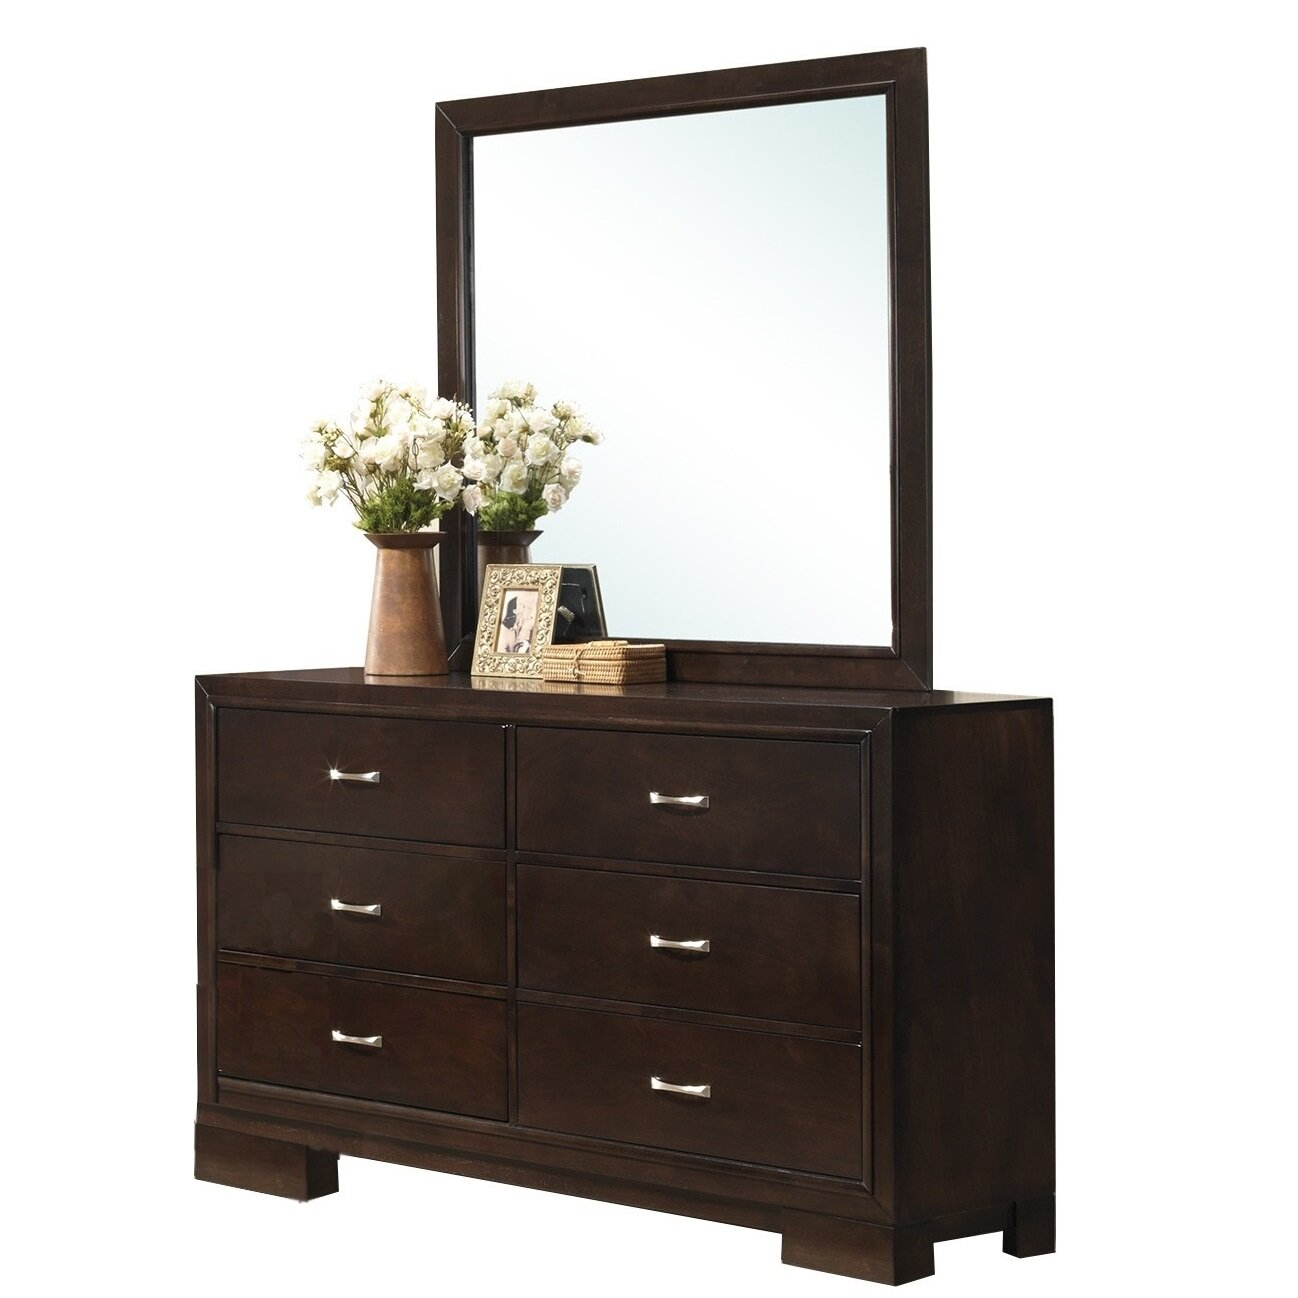 Furniture Bedroom Furniture Queen Bedroom Sets Roundhill Furniture